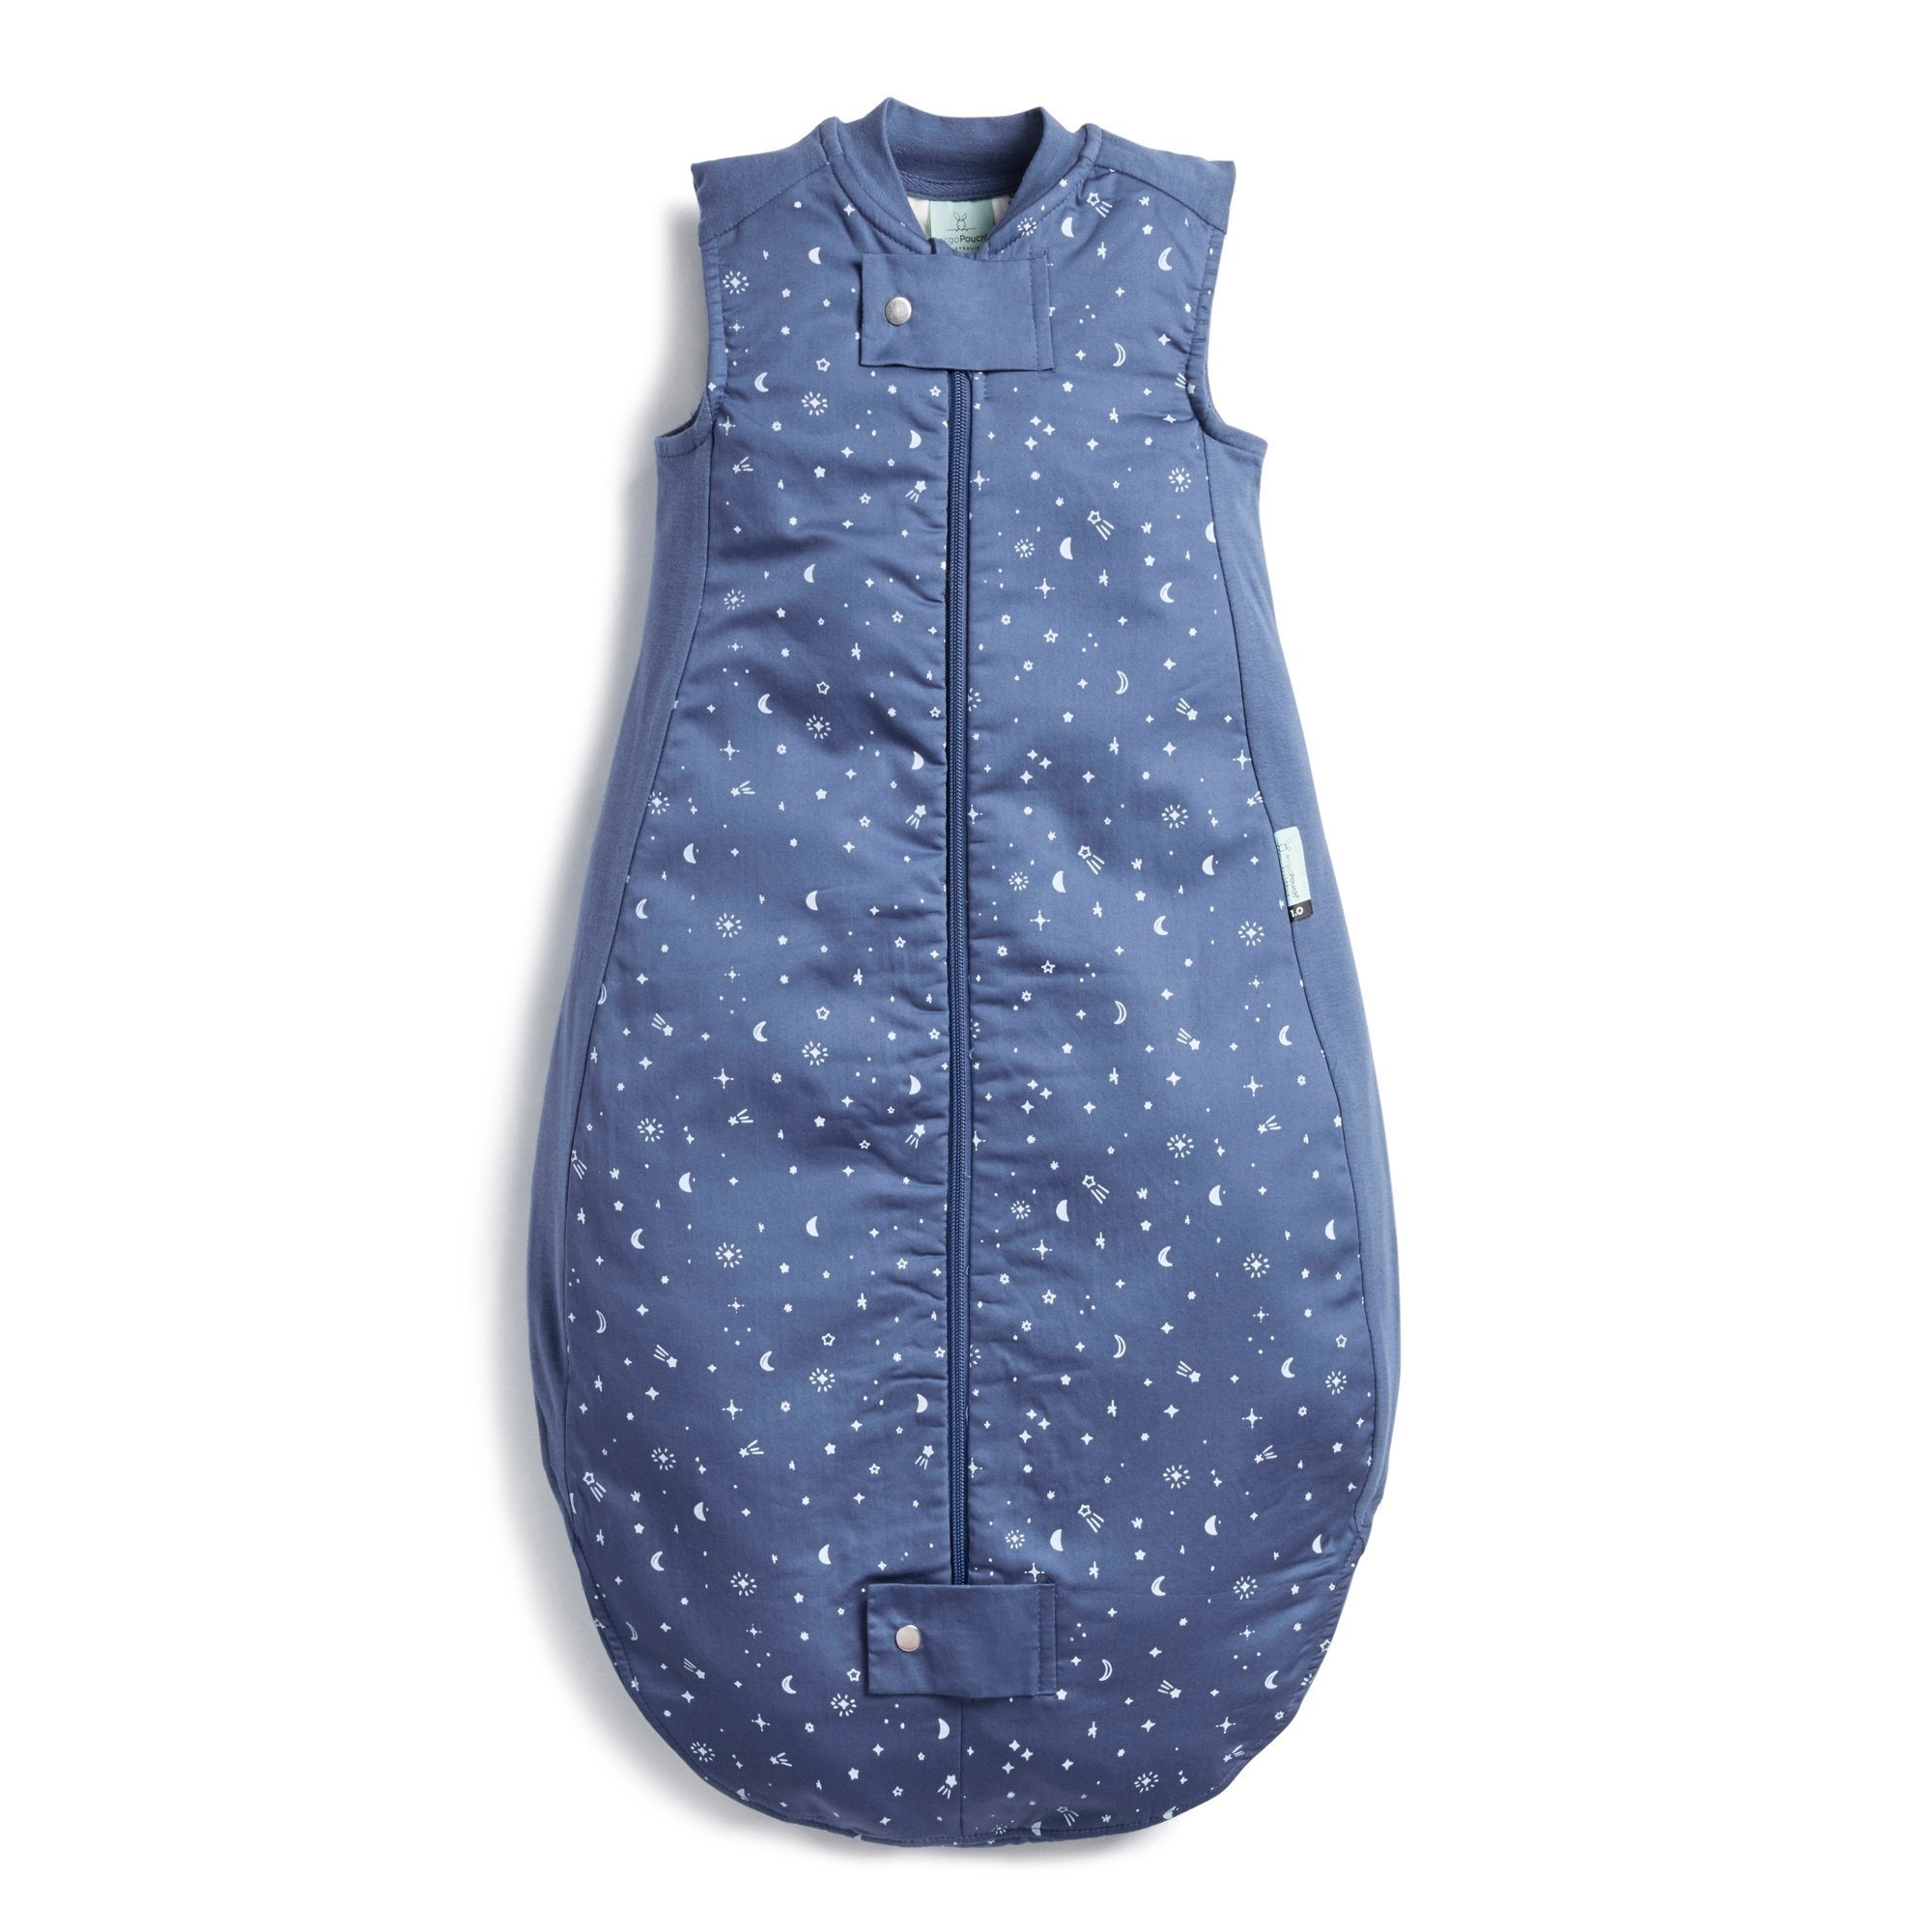 Sheeting Sleeping Bag 1.0 tog (Night Sky)